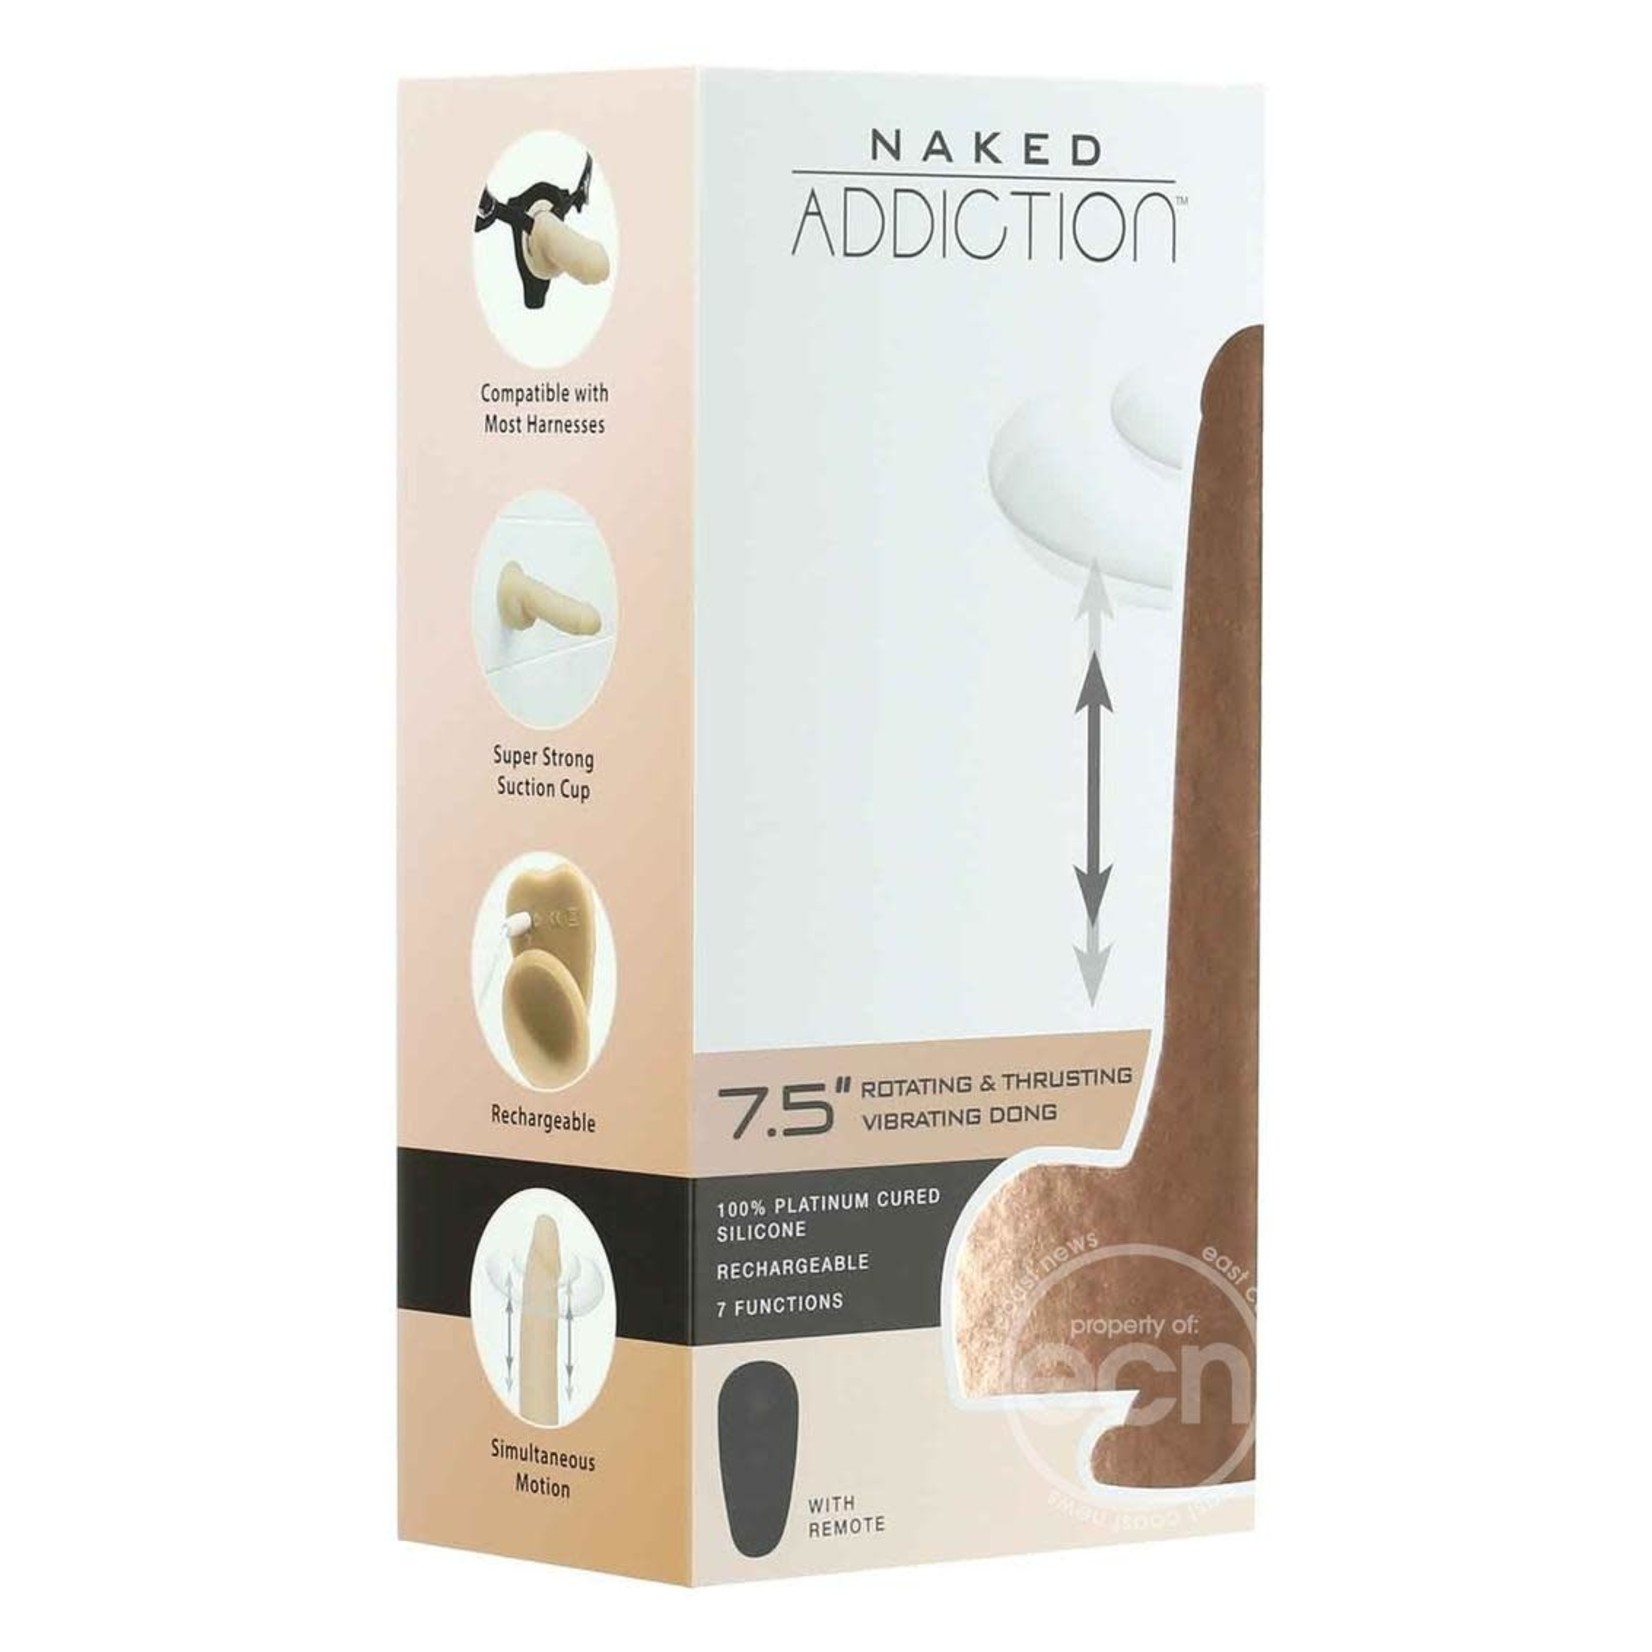 Naked Addiction Silicone Rechargeable Thrusting, Vibrating, and Rotating Dildo 7.5in - Vanilla